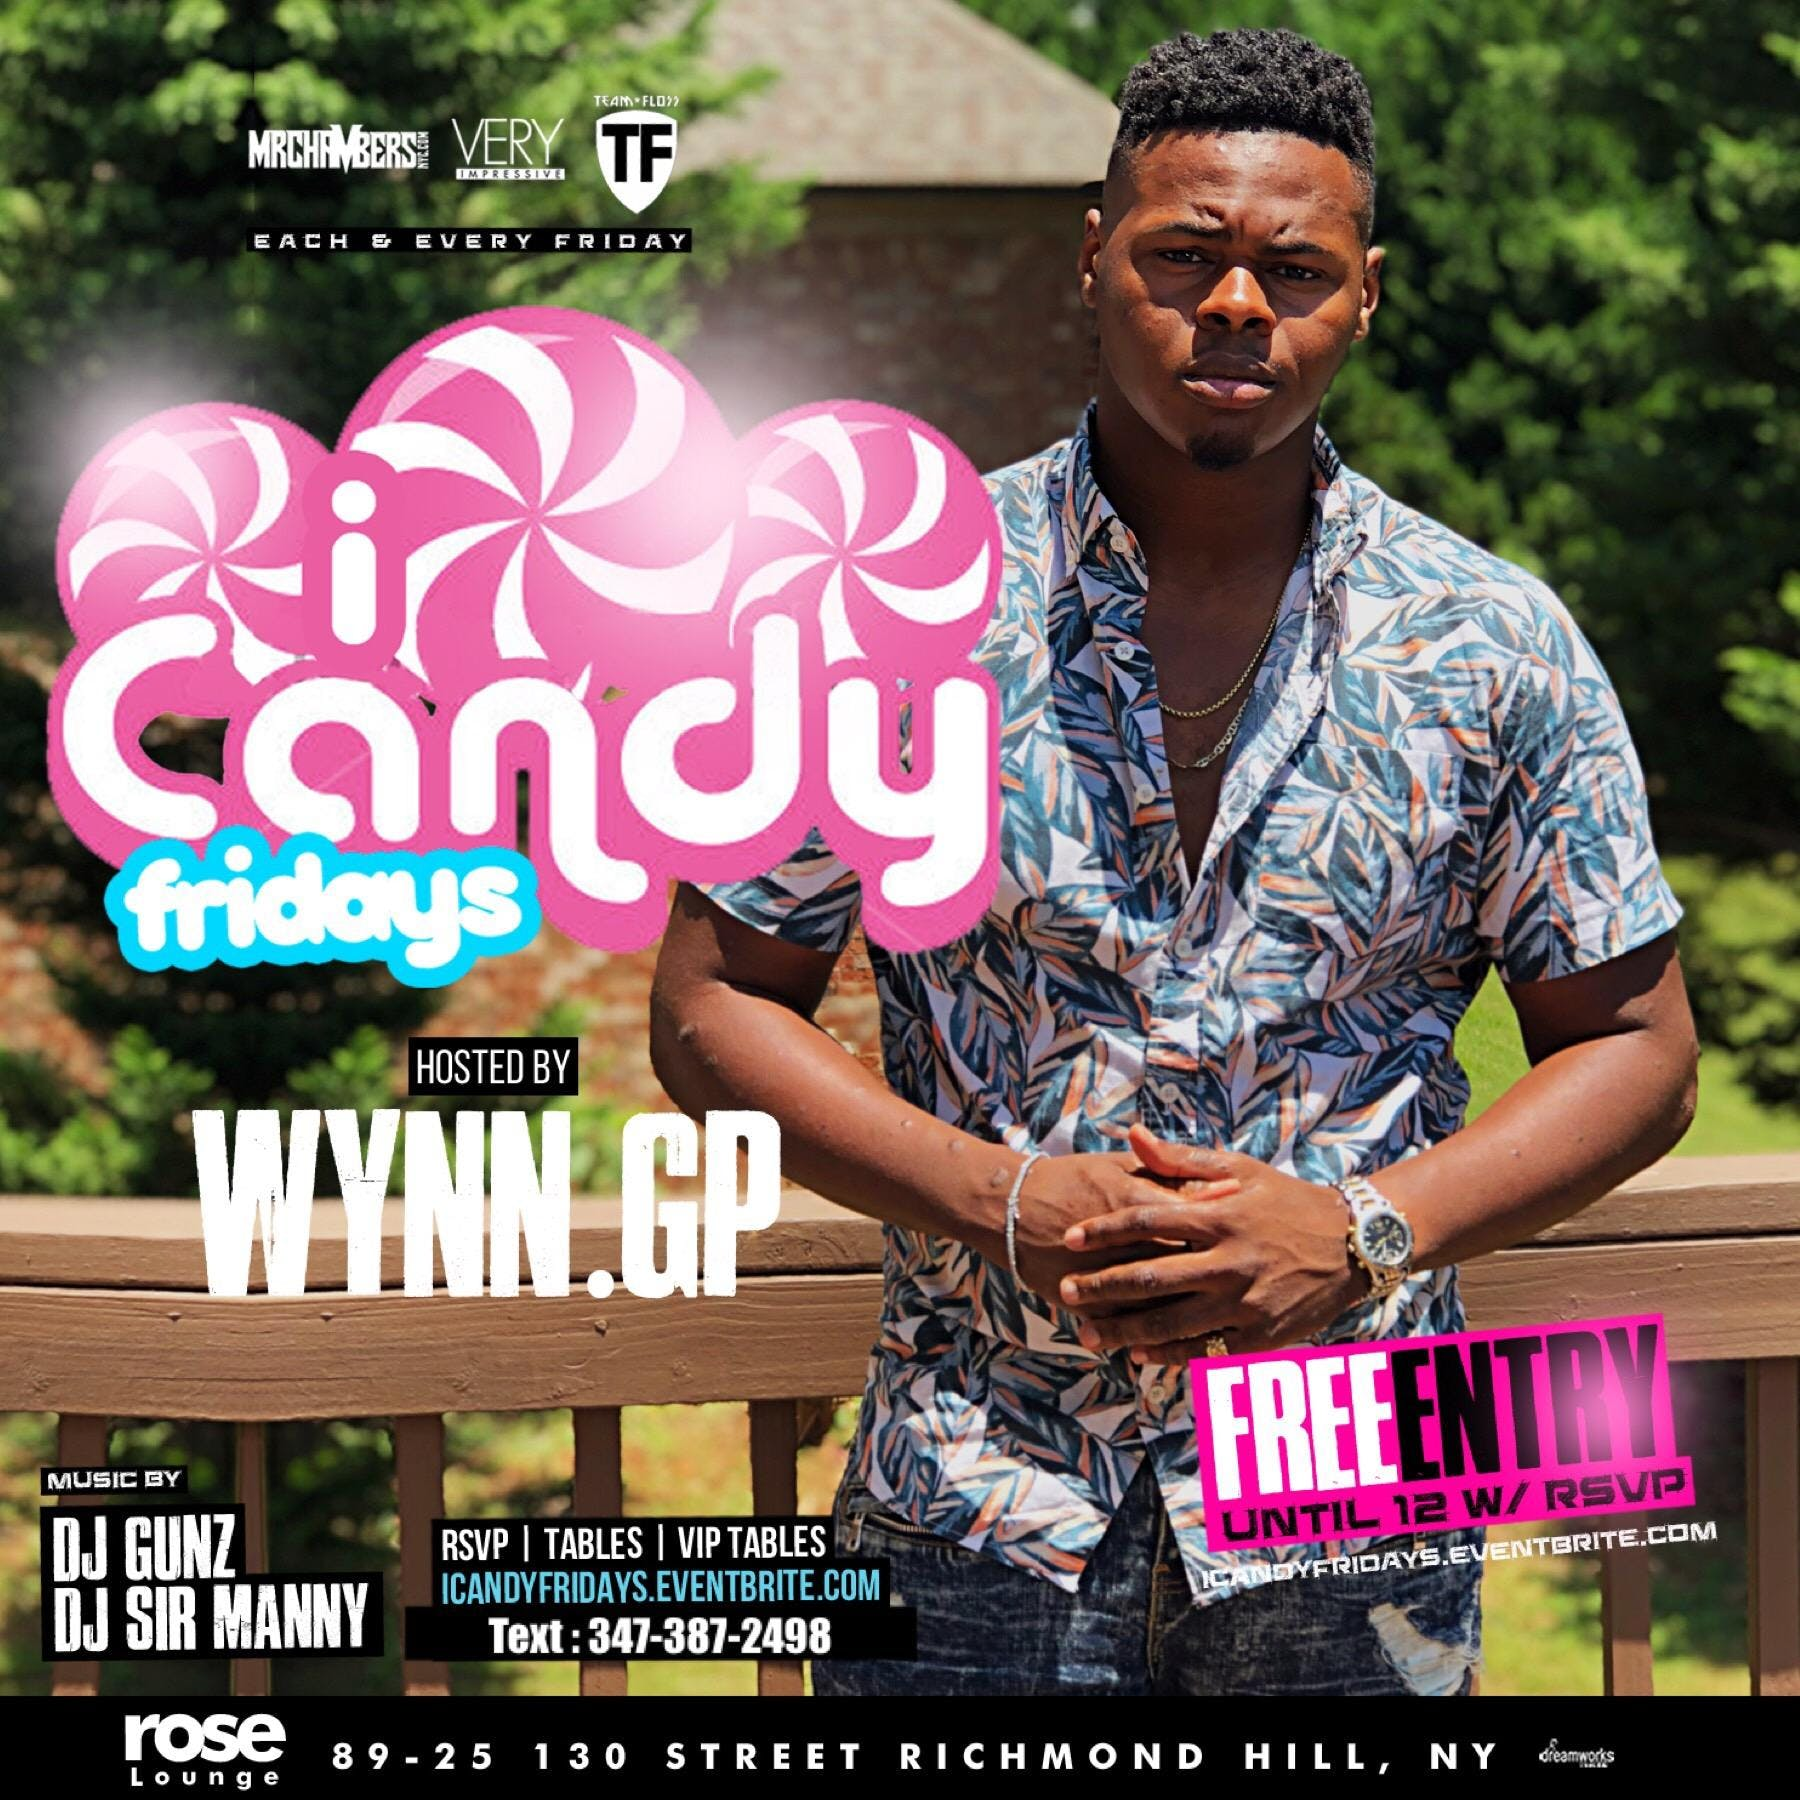 ICANDY Fridays @ Queens ROSE LOUNGE (FREE W/ RSVP) Powered by : @Wynngp